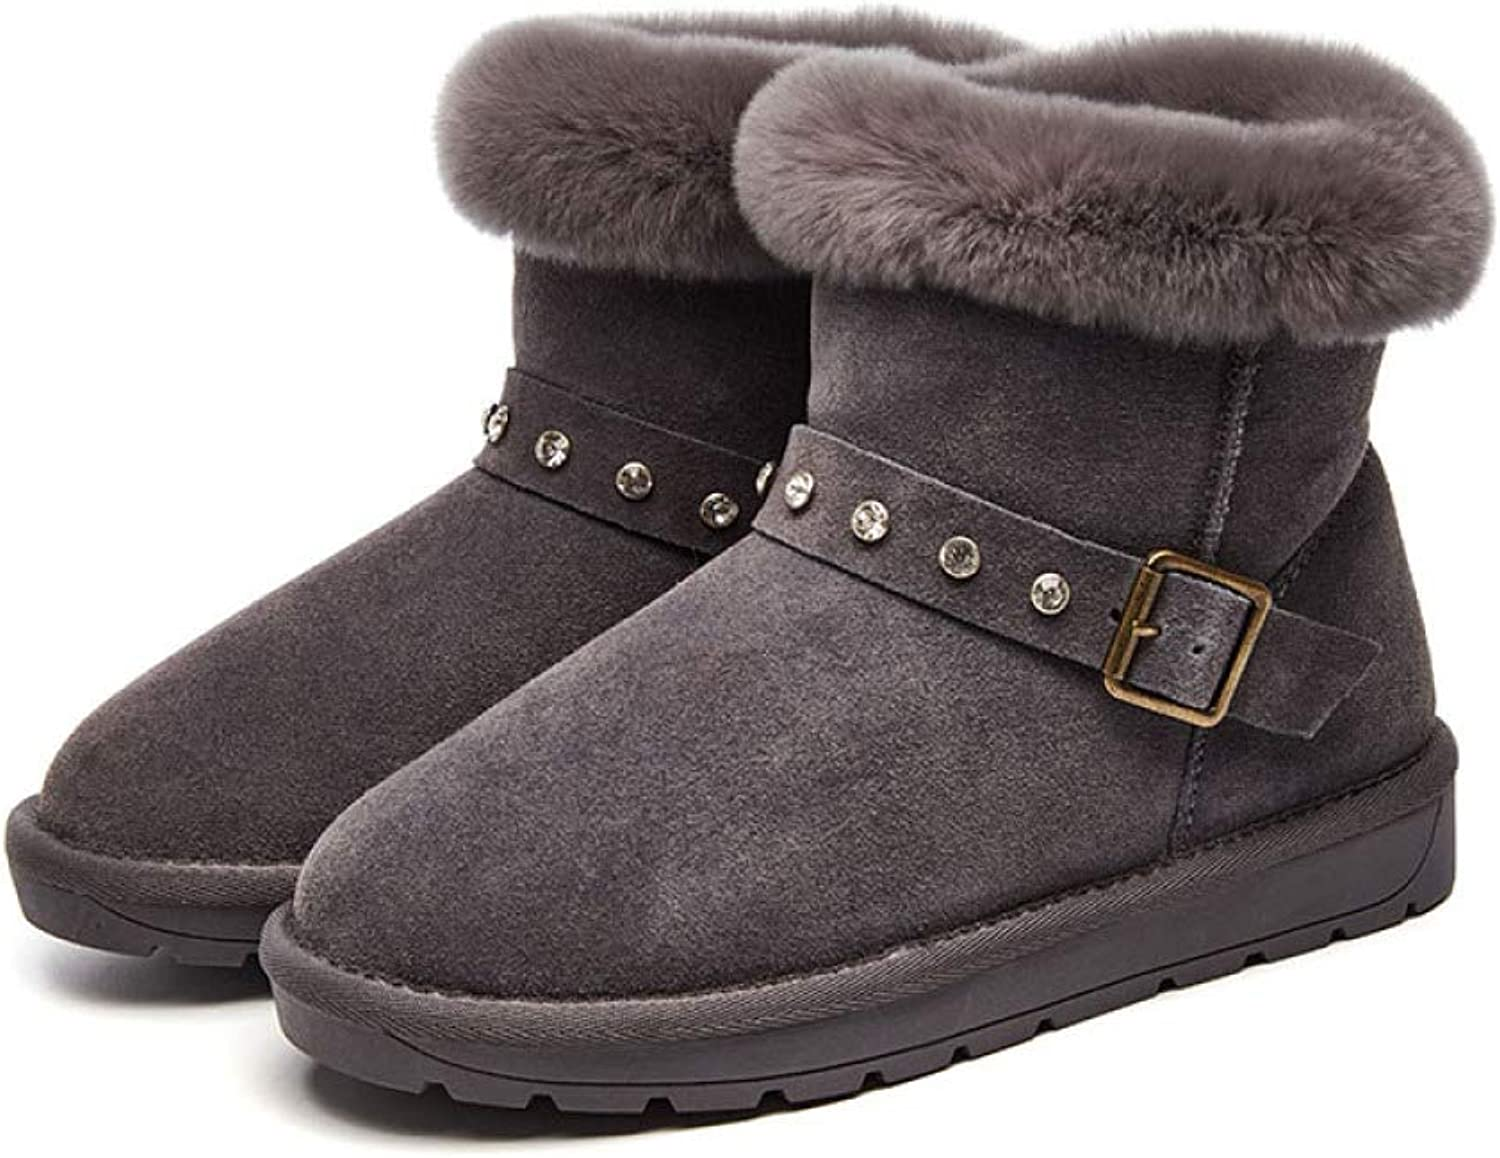 Snow Boots for Women, Fall Winter Warm Buckled Velvet Women's shoes for Outdoors Etc.